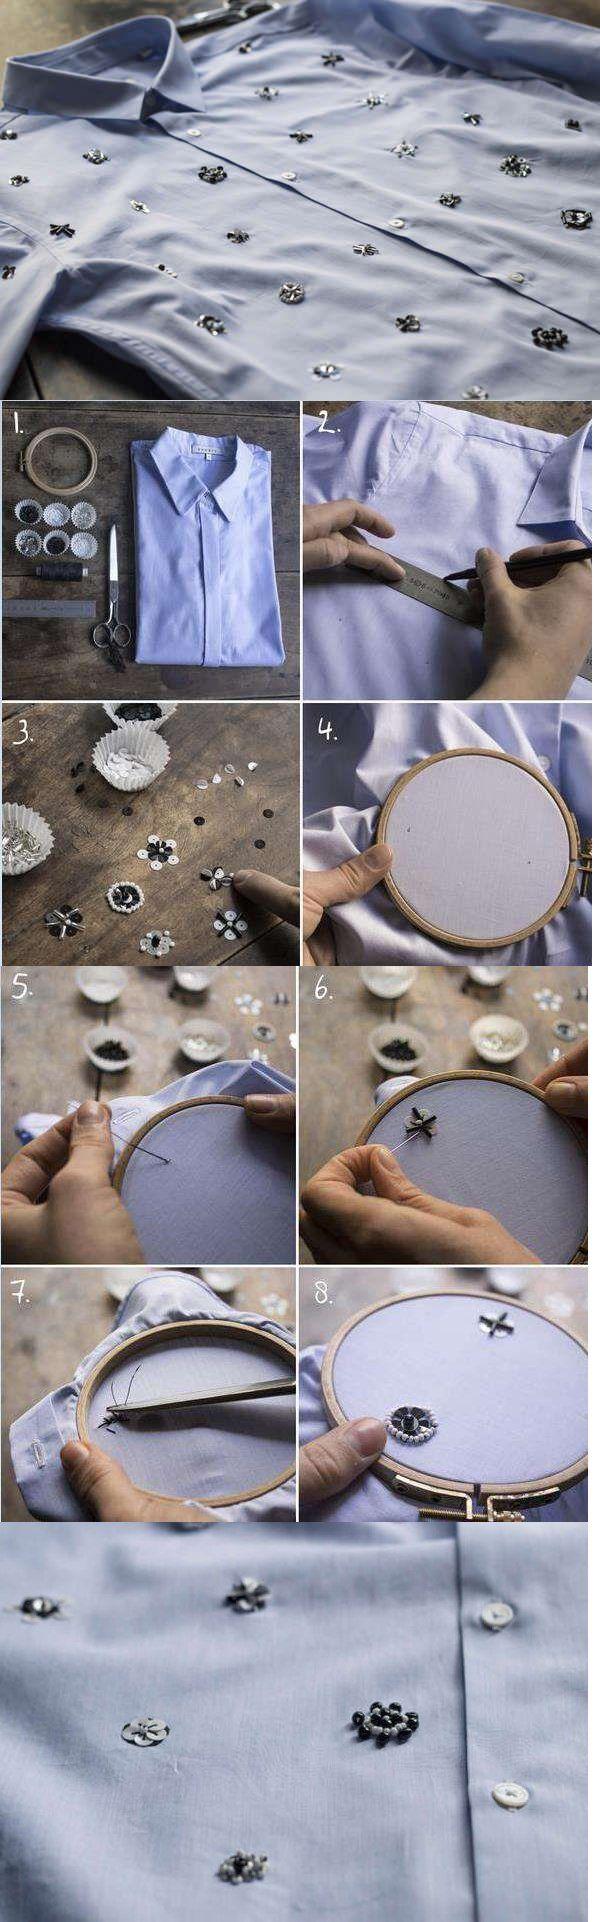 12 Extraordinary DIY Ways How To Renew Your Old Shirts